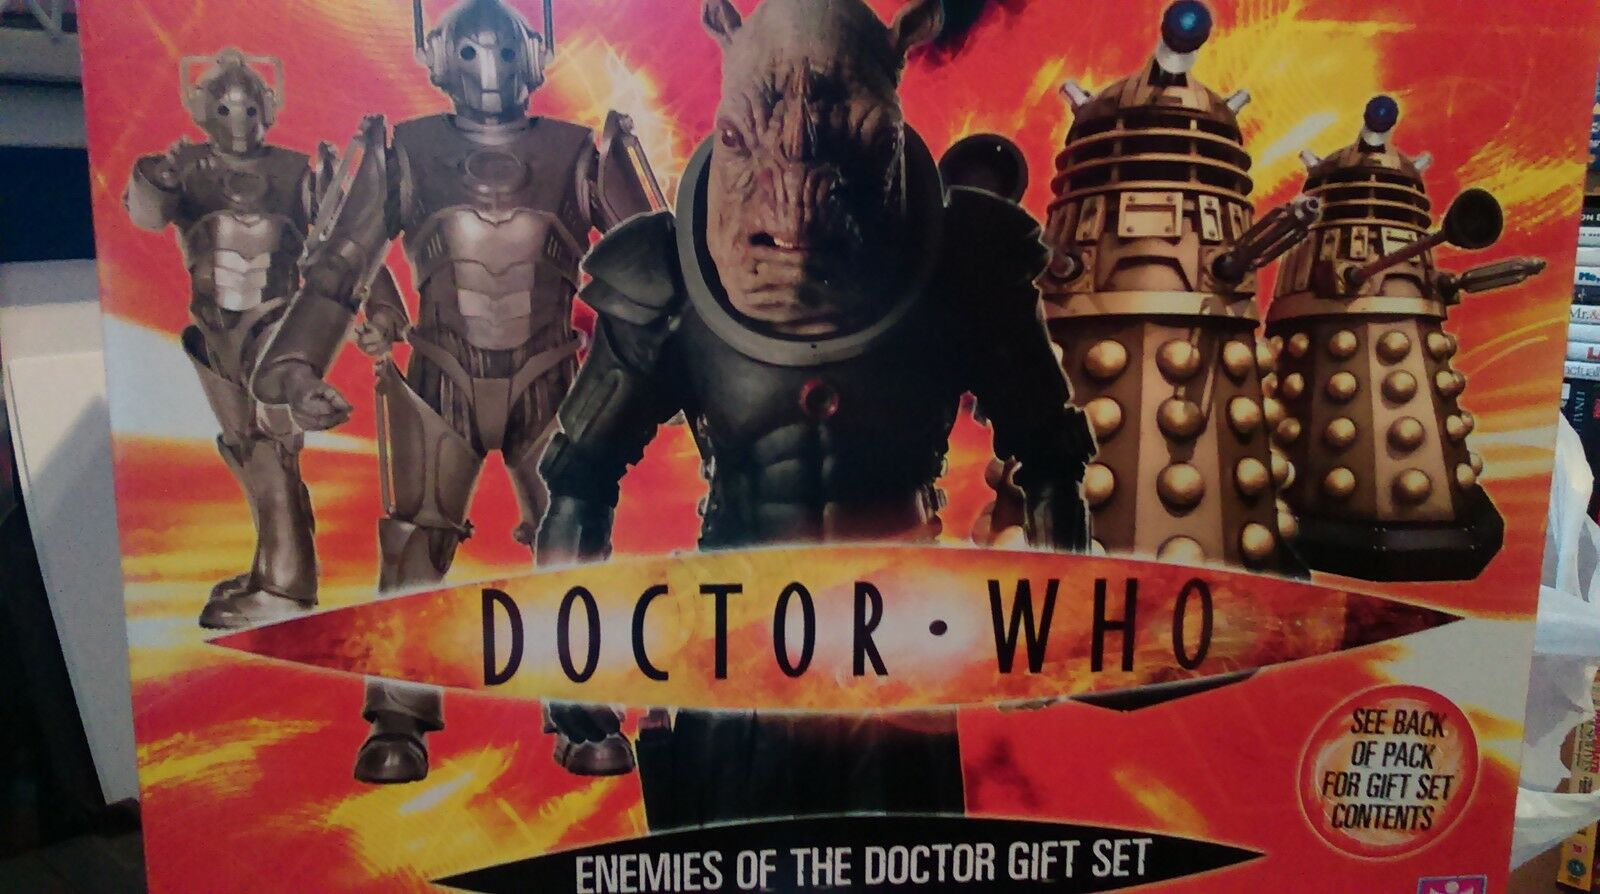 DOCTOR WHO ENEMIES OF THE DOCTOR GIFT SET - 7 ITEMS IN THE SET ie sound mugs+